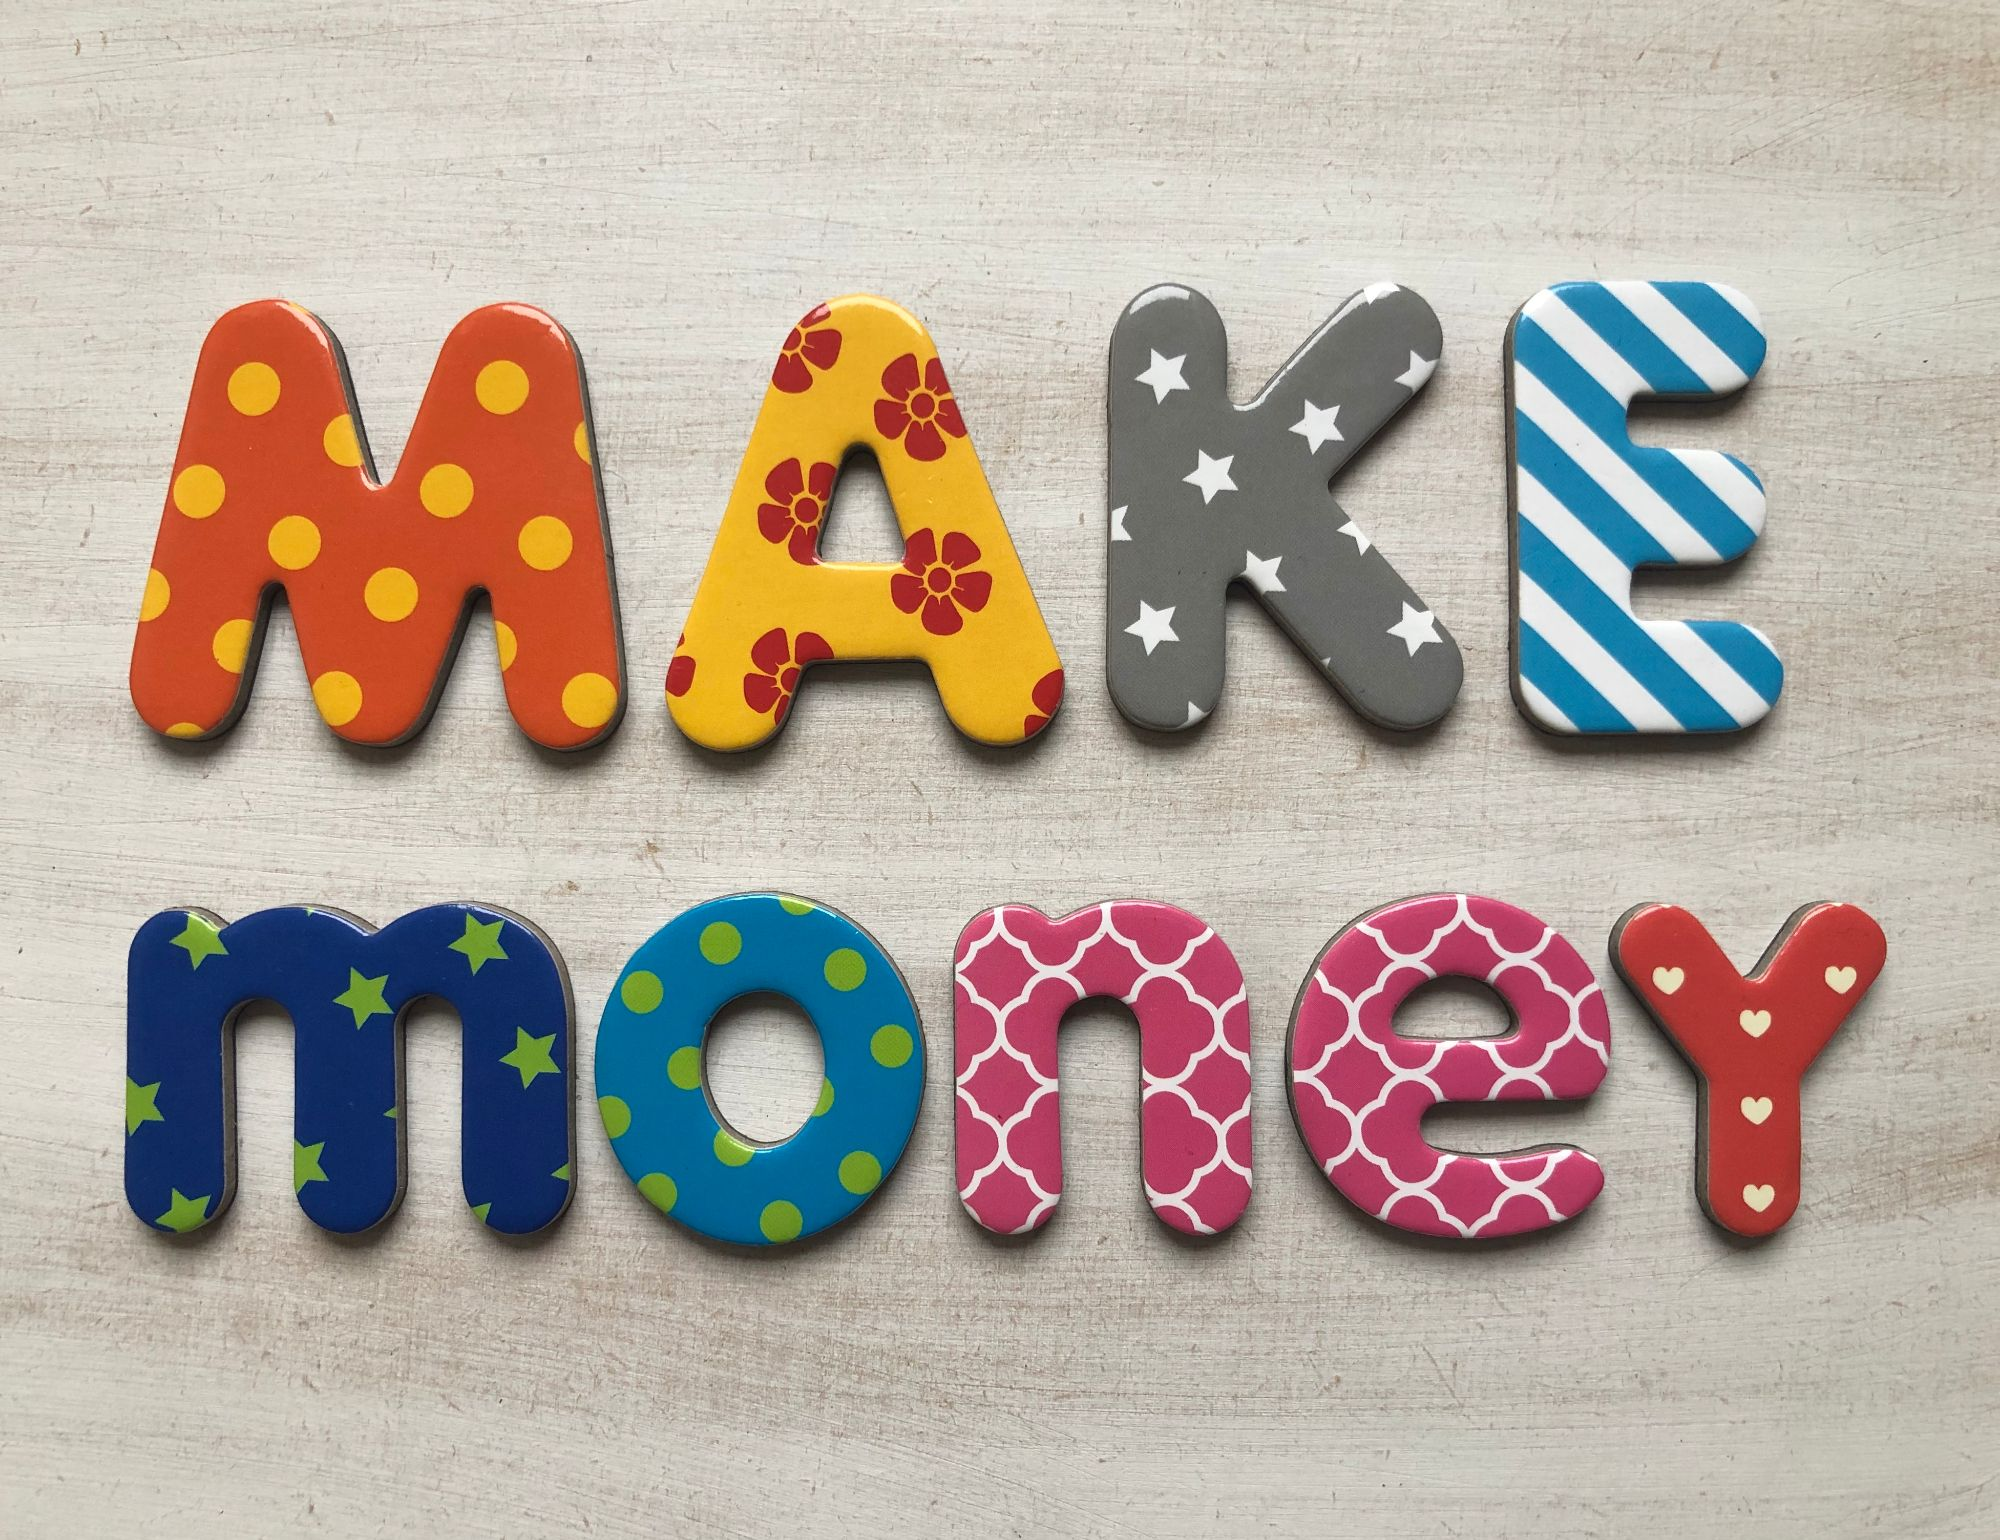 Free stock images money bloggers blog photos make money alphabet lettering